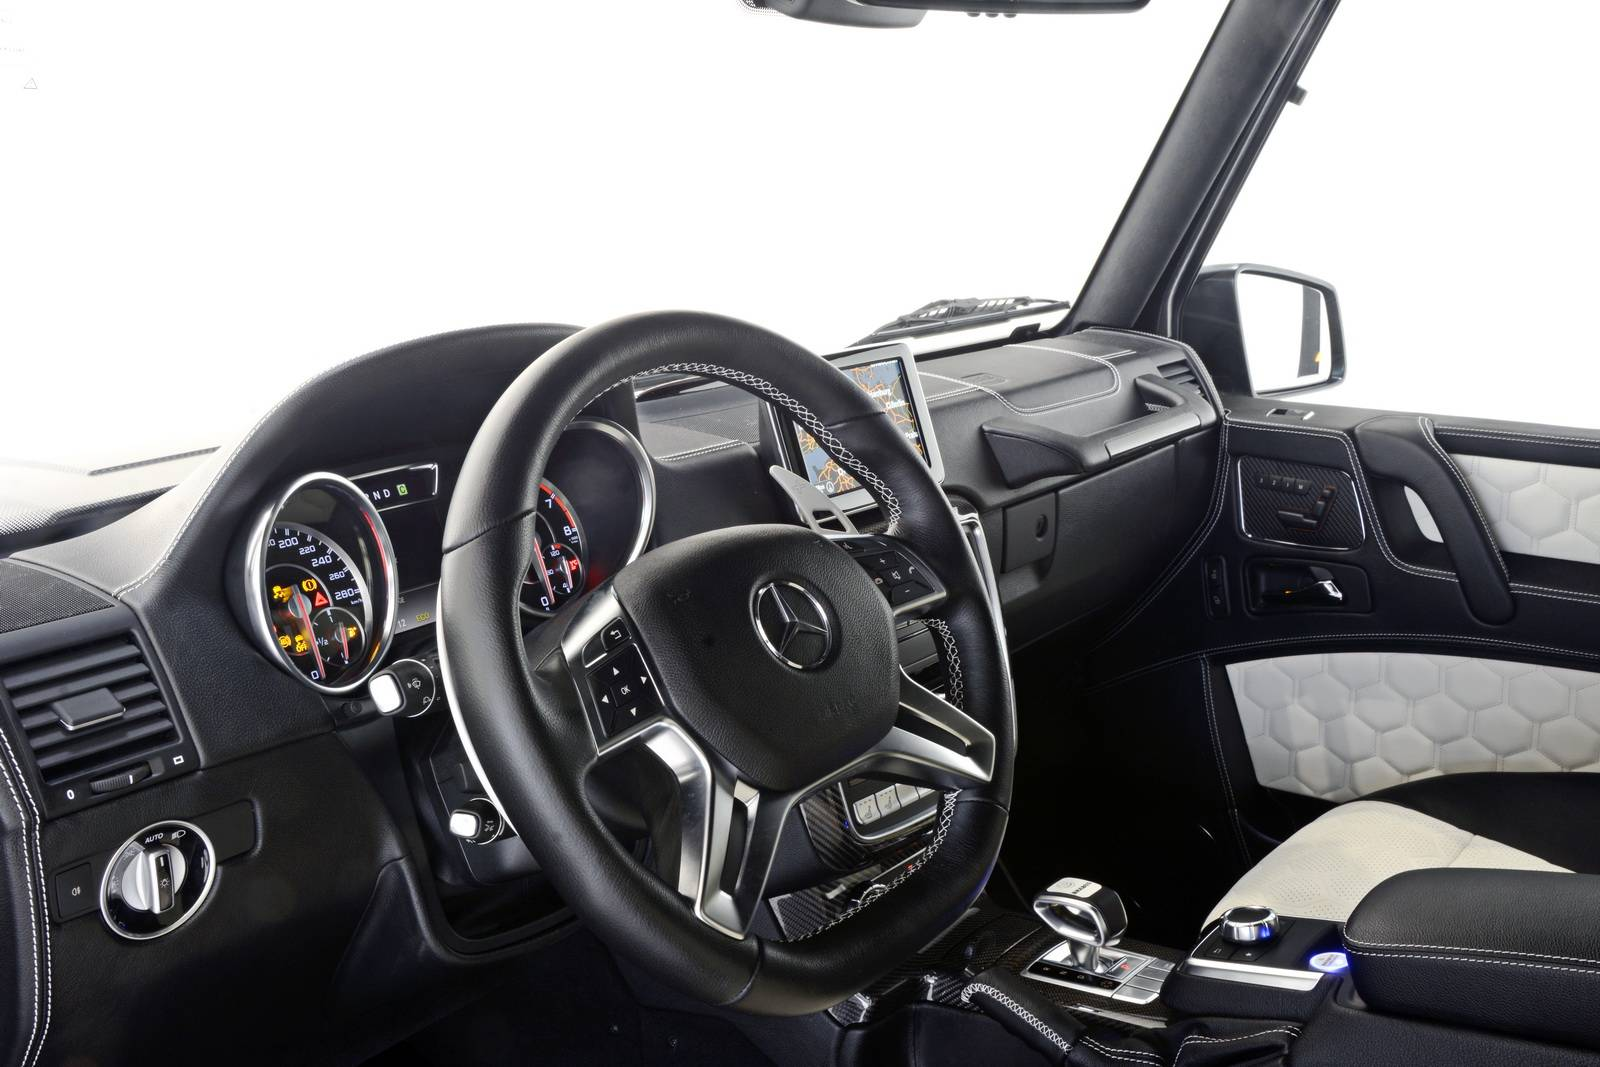 2016 brabus 850 mercedes benz g63 amg benztuning. Black Bedroom Furniture Sets. Home Design Ideas